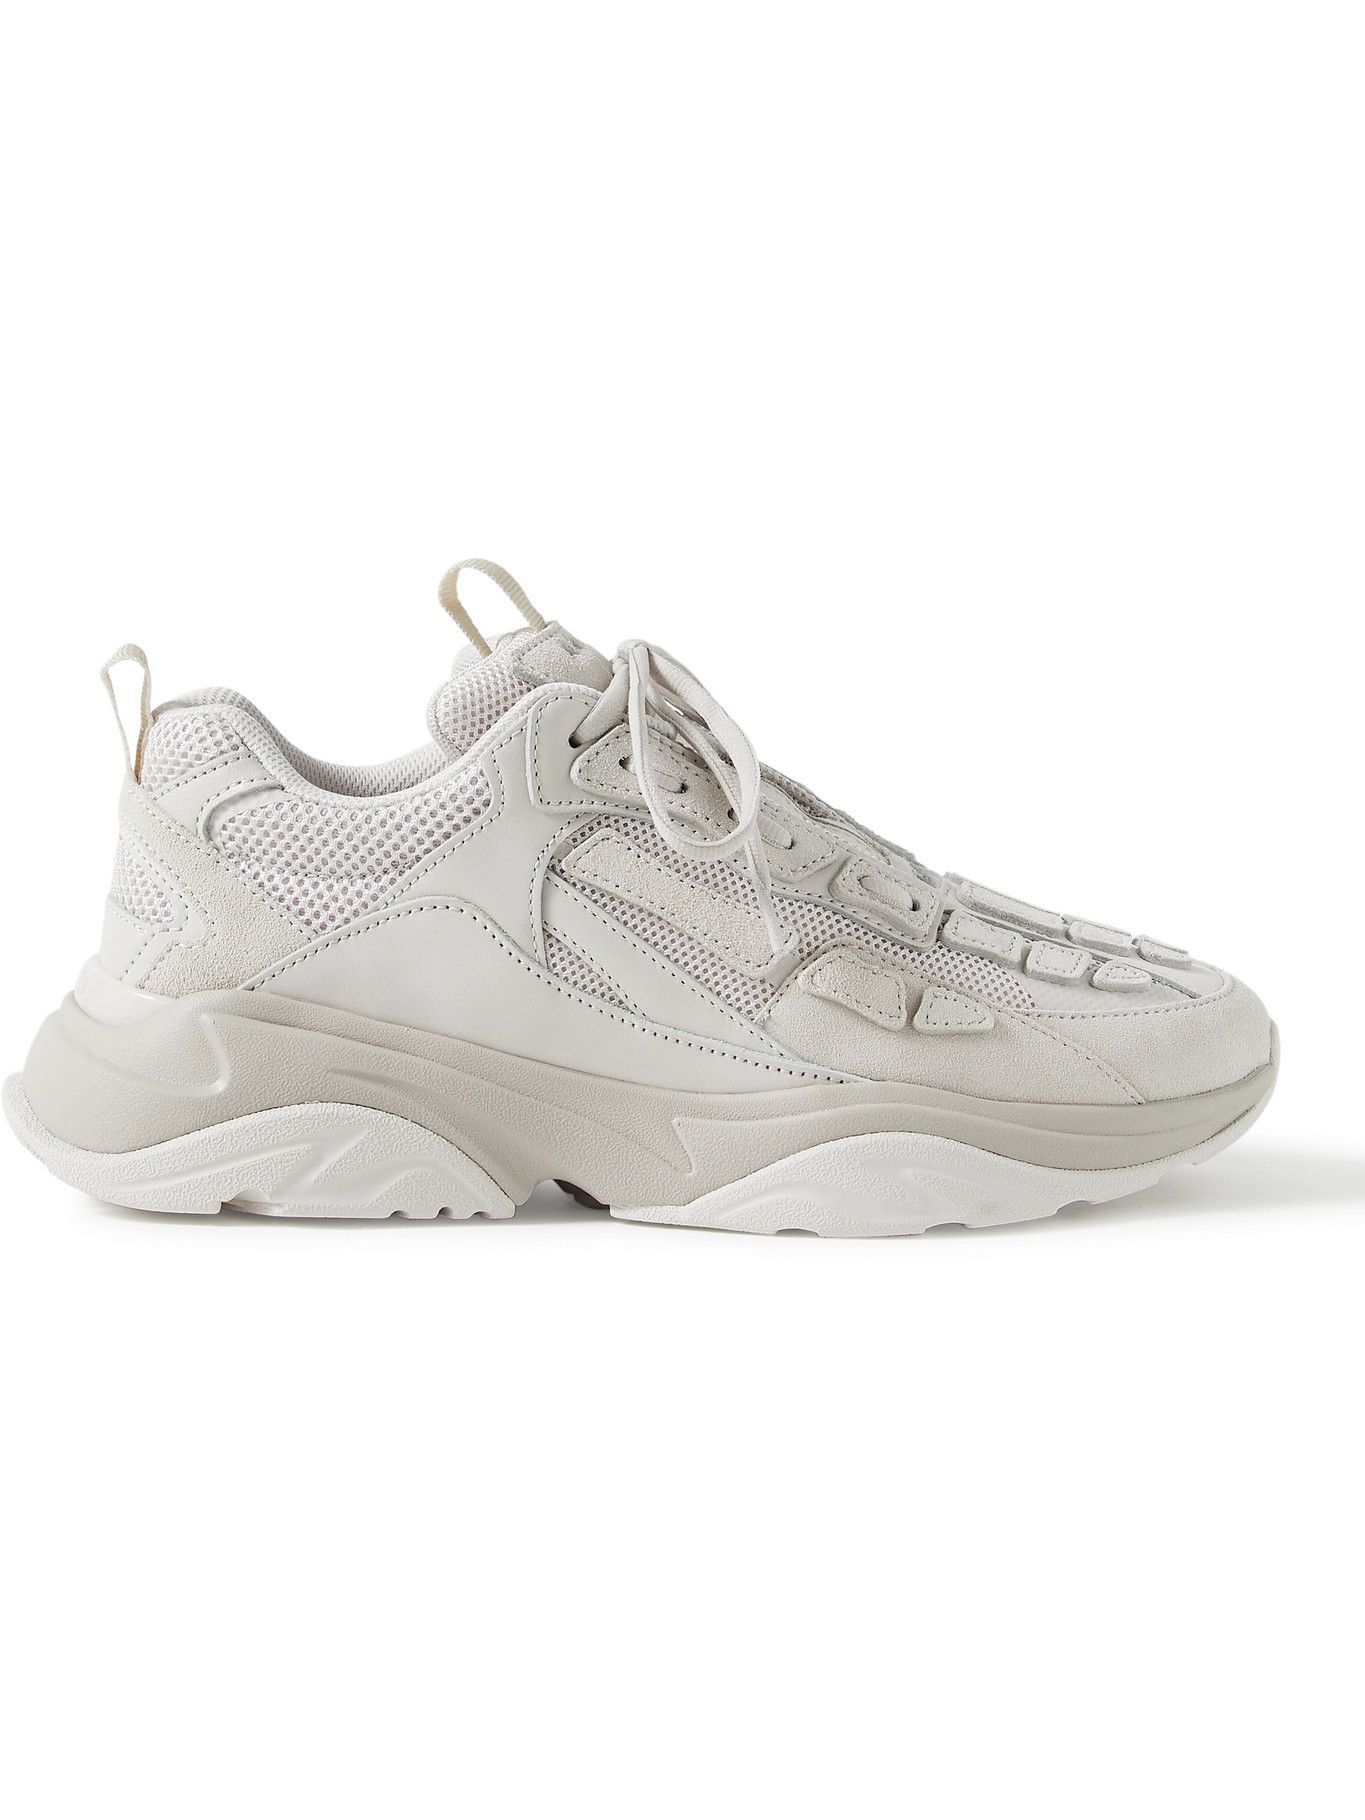 Photo: AMIRI - Bone Runner Leather and Suede-Trimmed Mesh Sneakers - Gray